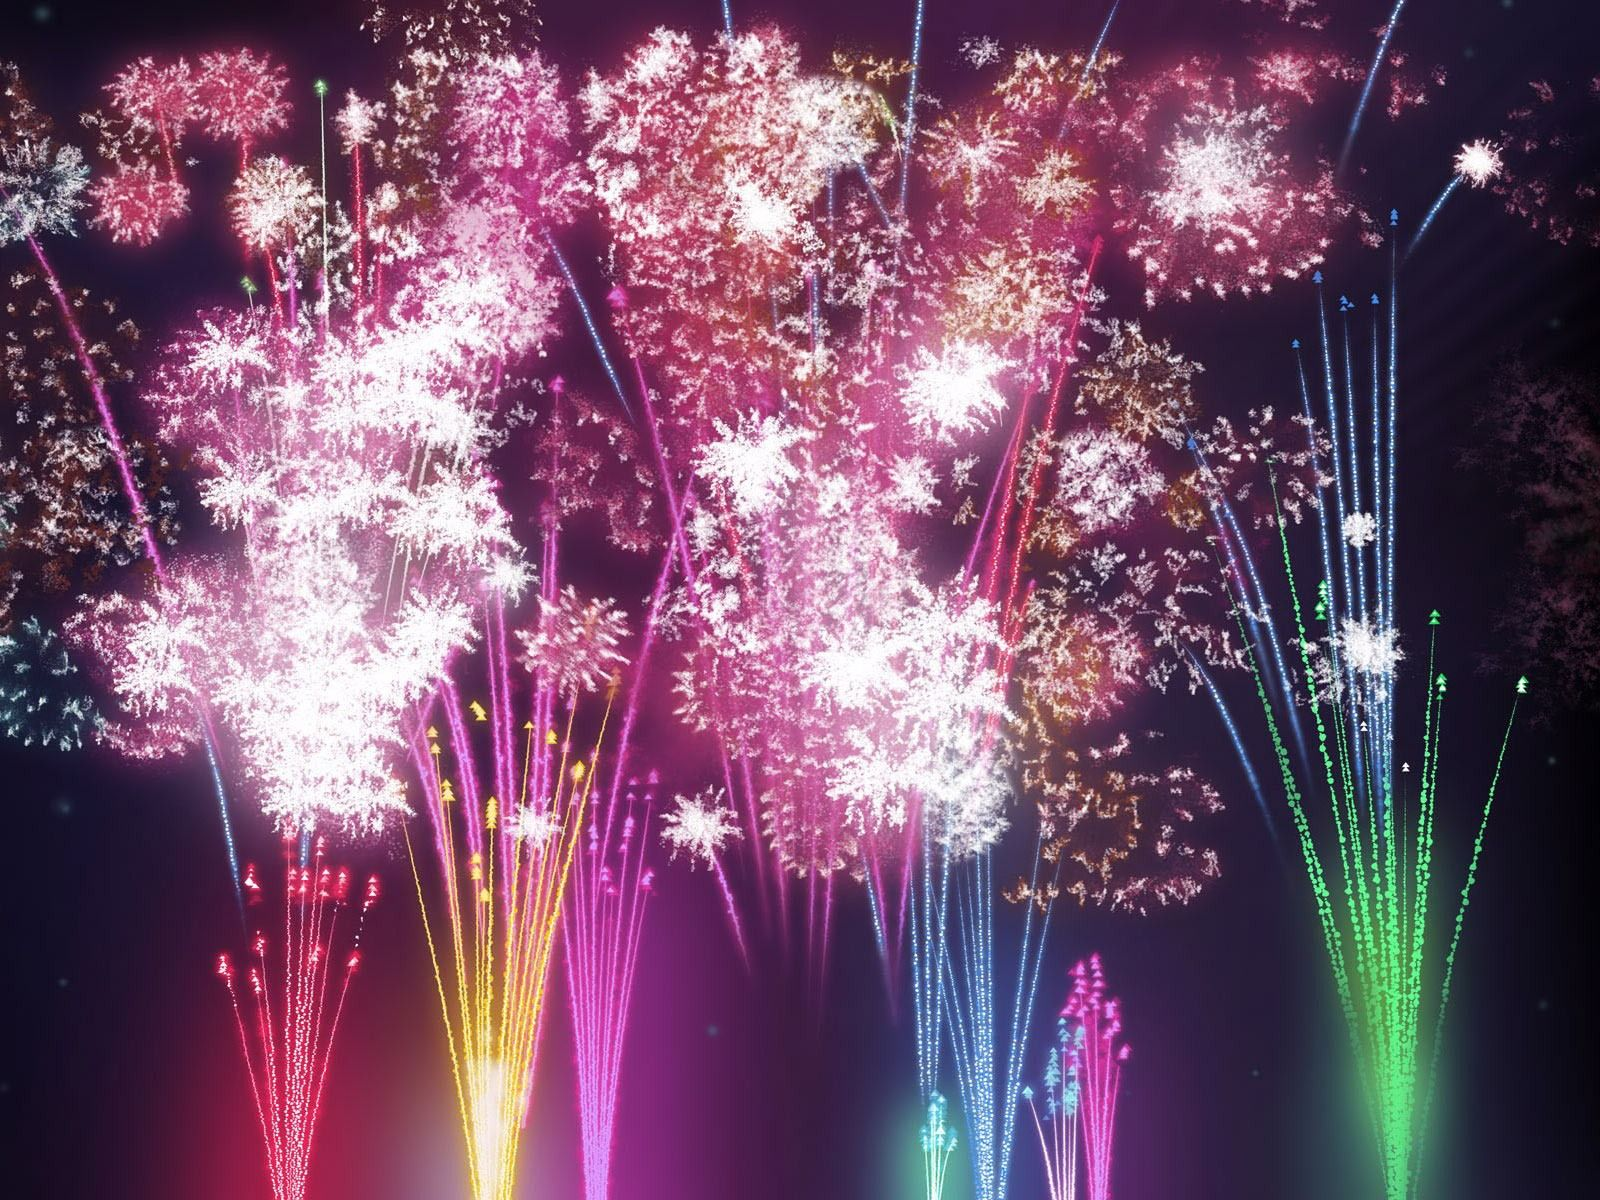 Fireworks desktop wallpaper Desktop Fireworks background New 1600x1200